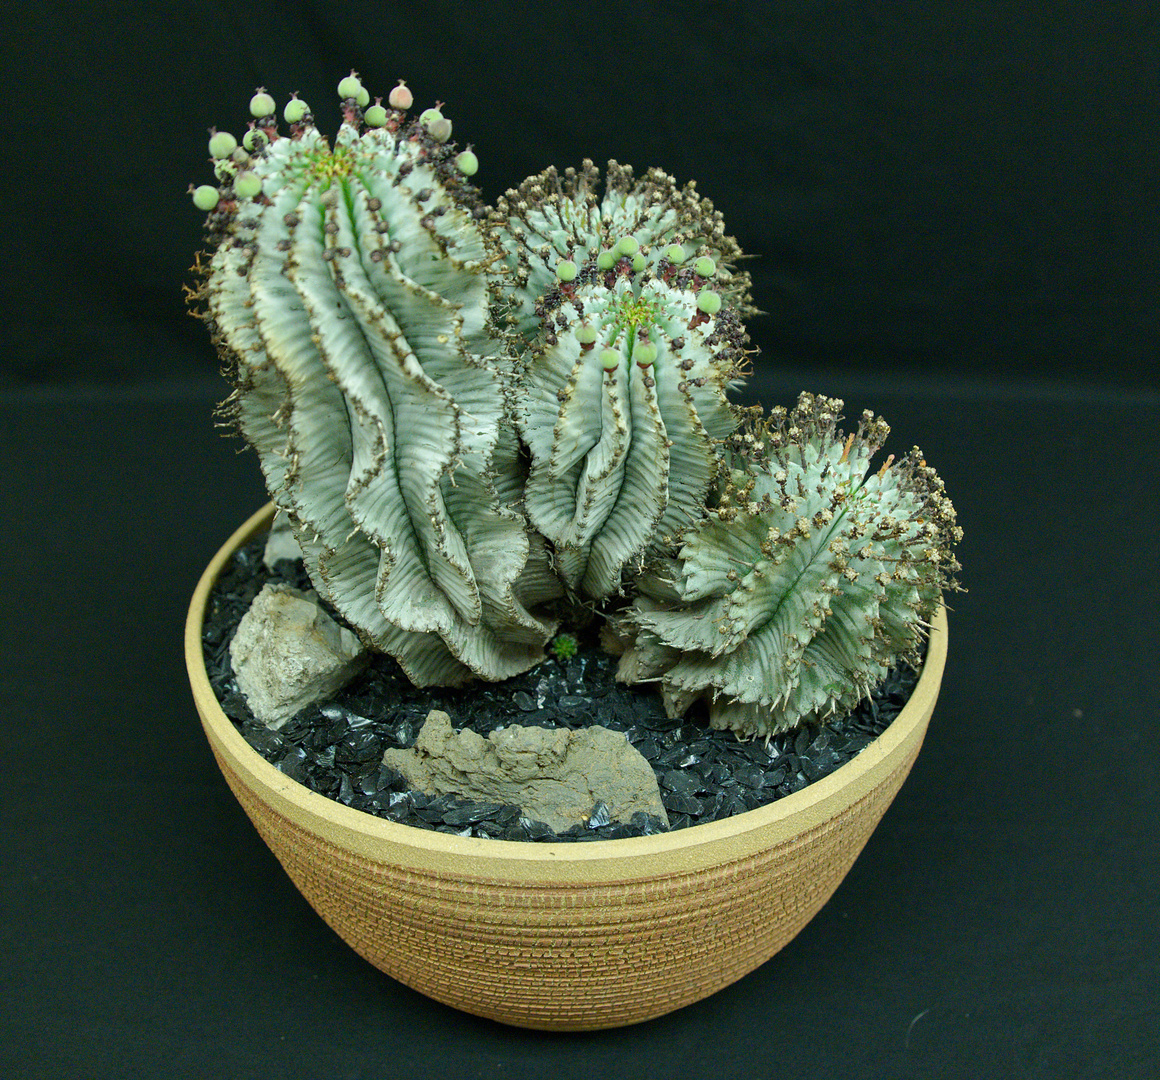 SCCSS 2017 May - Winner Intermediate Succulent - William Wilk - Euphorbia Horrida Var. Striata